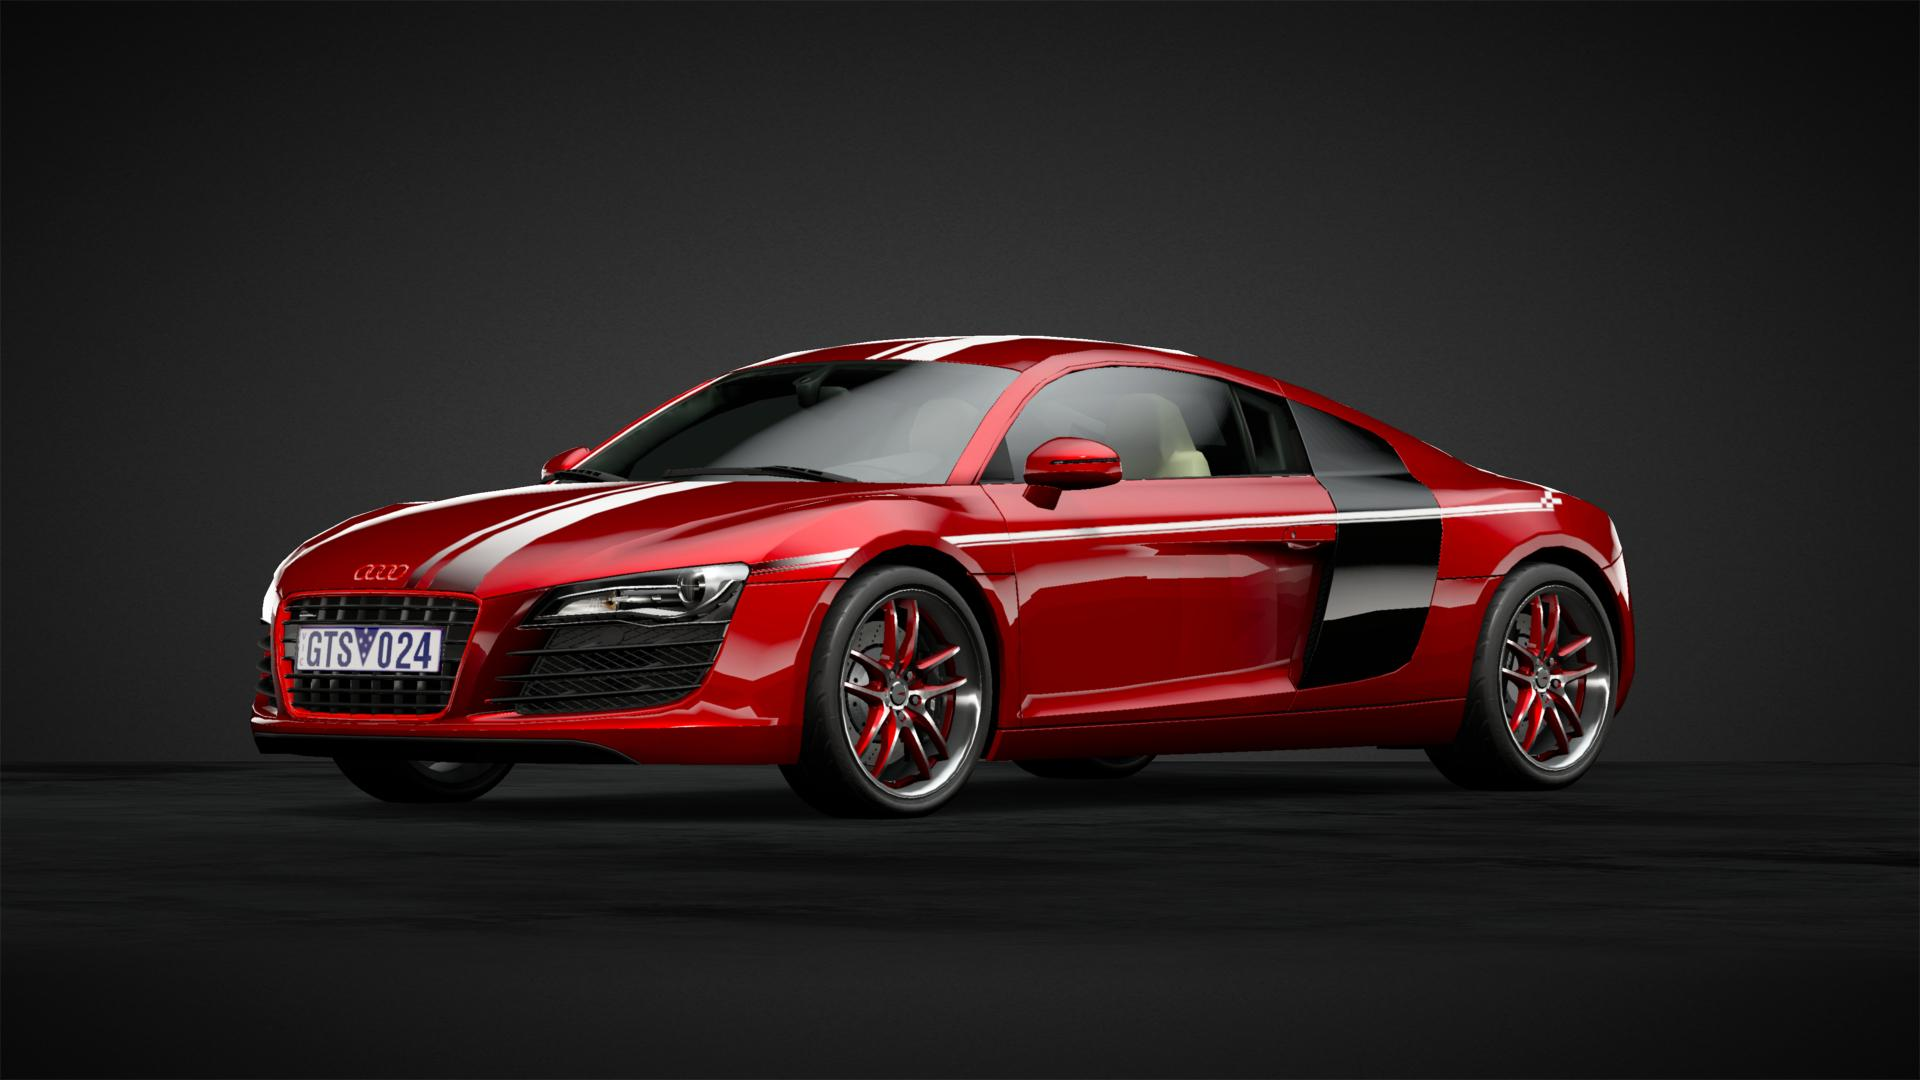 Red with racing stripes - Car Livery by GTSimo | Community